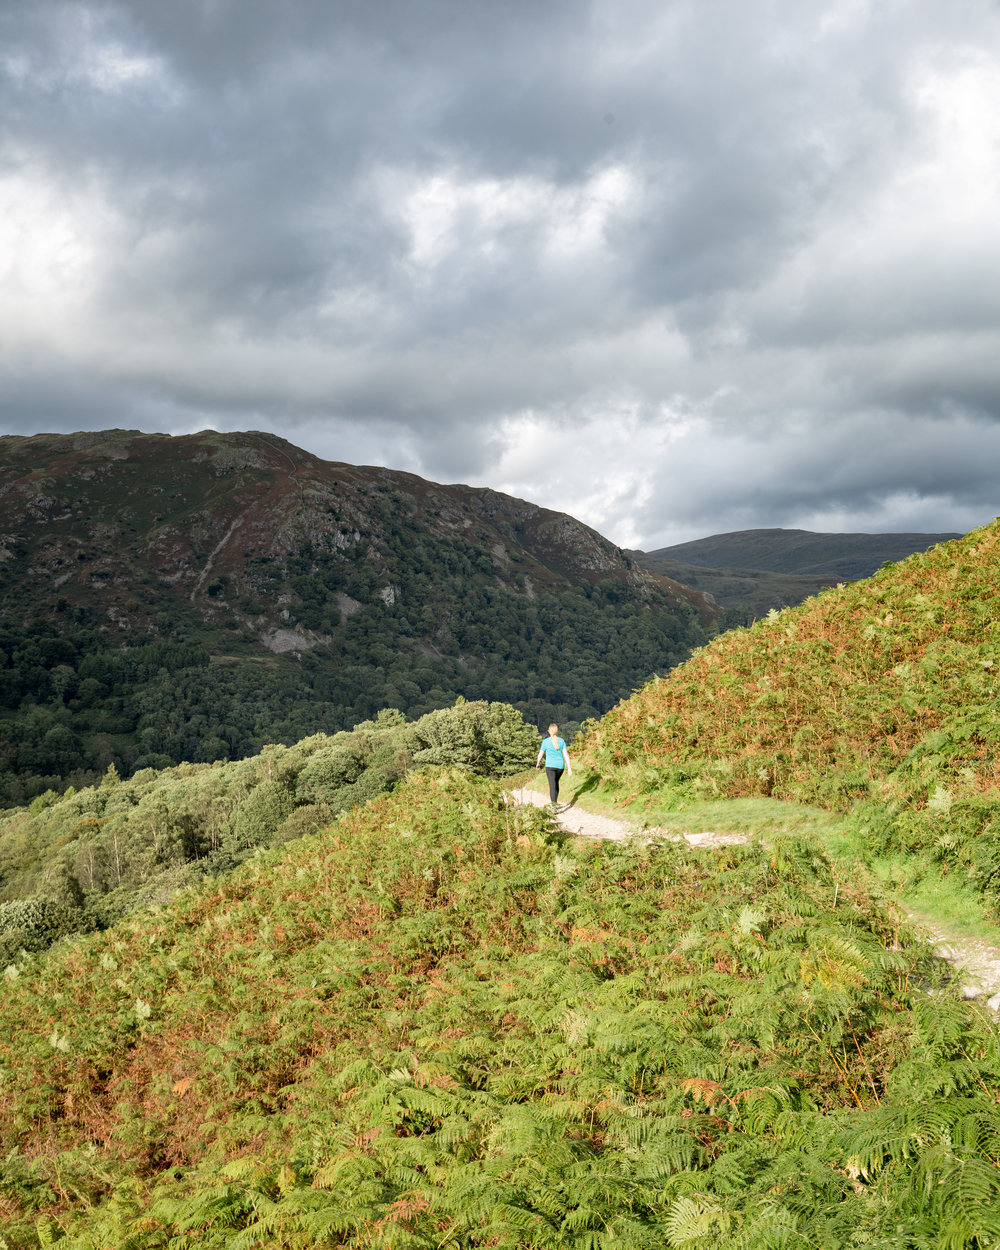 The walk back to Ambleside from Grassmere